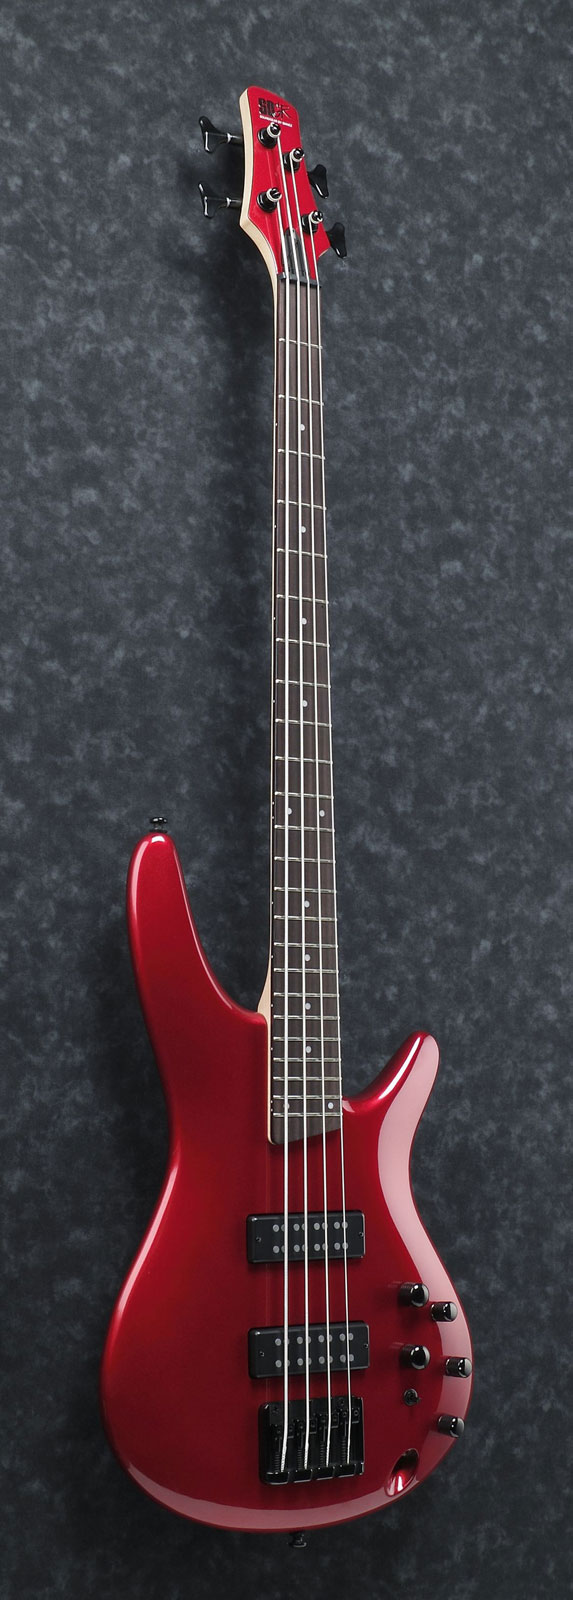 SR300EB-CA CANDY APPLE